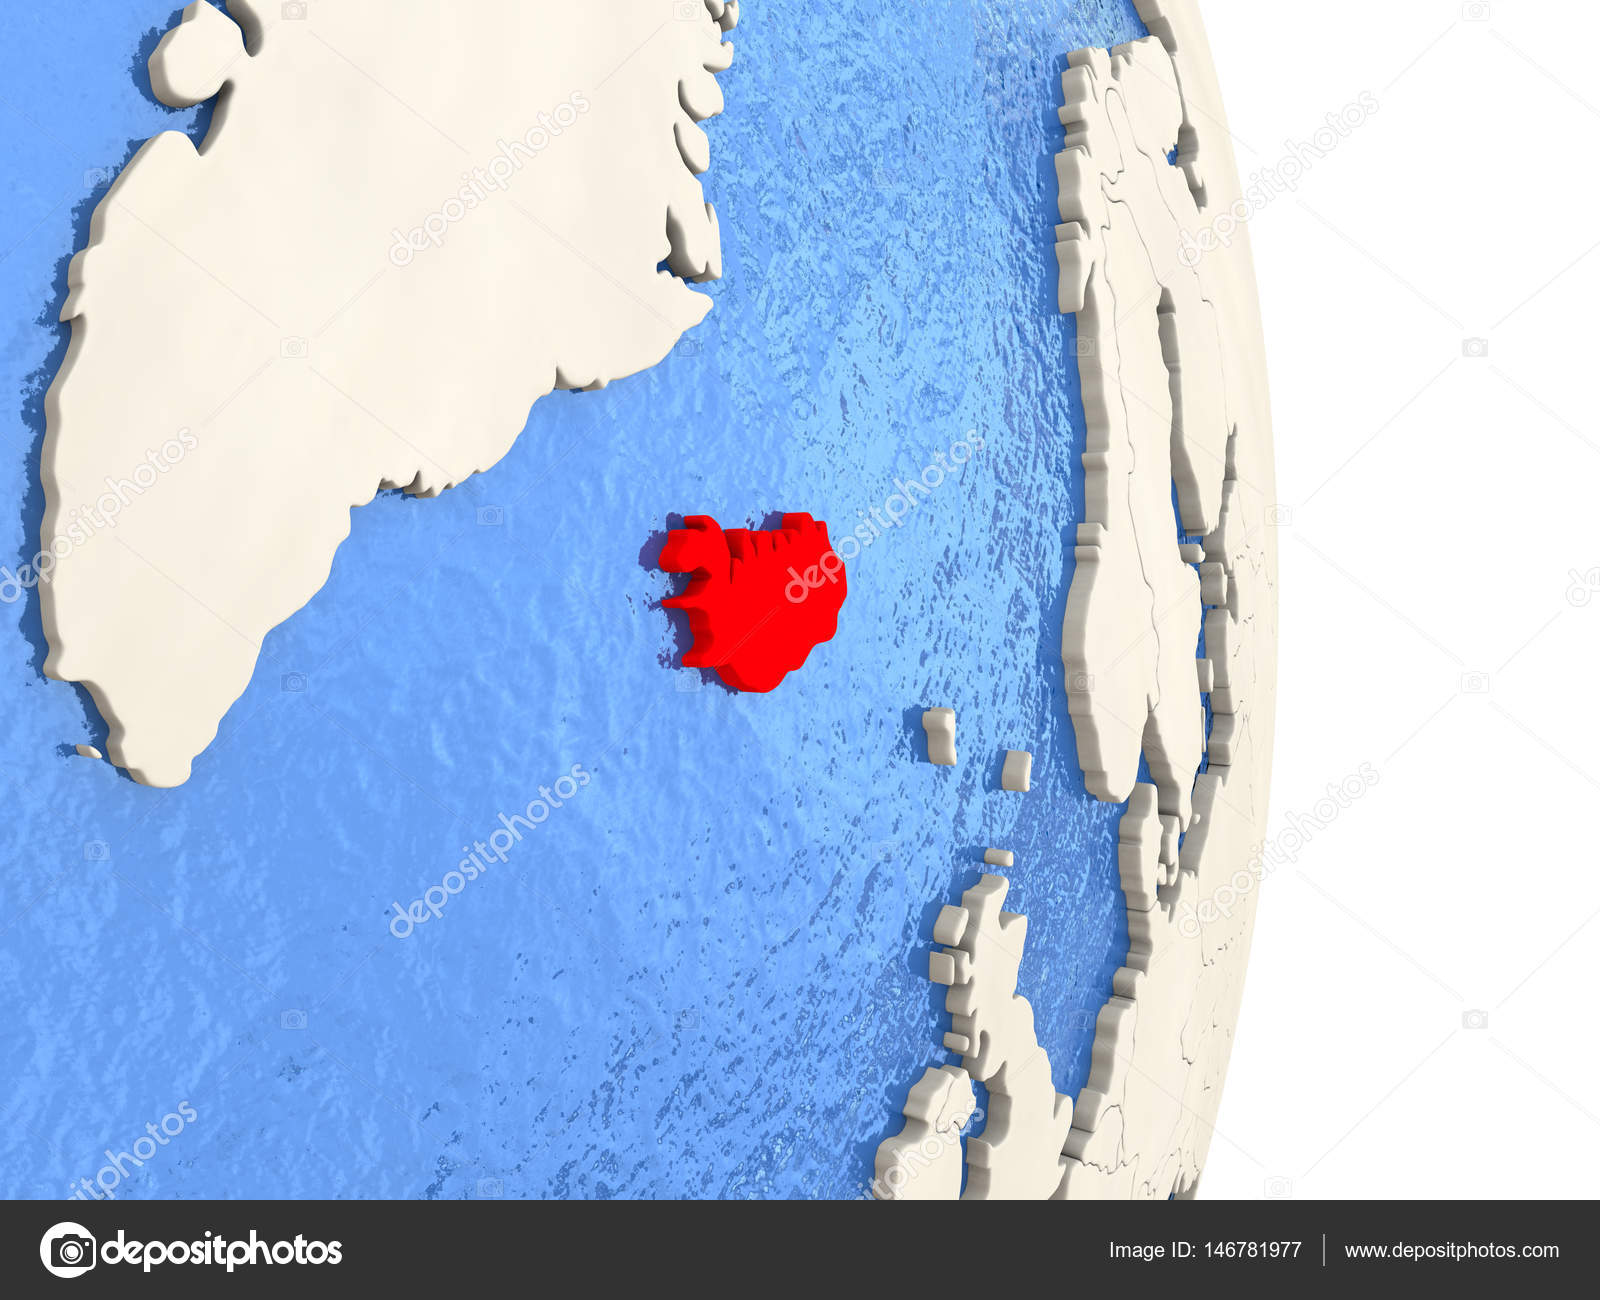 Iceland on model of political globe stock photo tomiger map of iceland on globe with blue watery seas 3d illustration photo by tomiger gumiabroncs